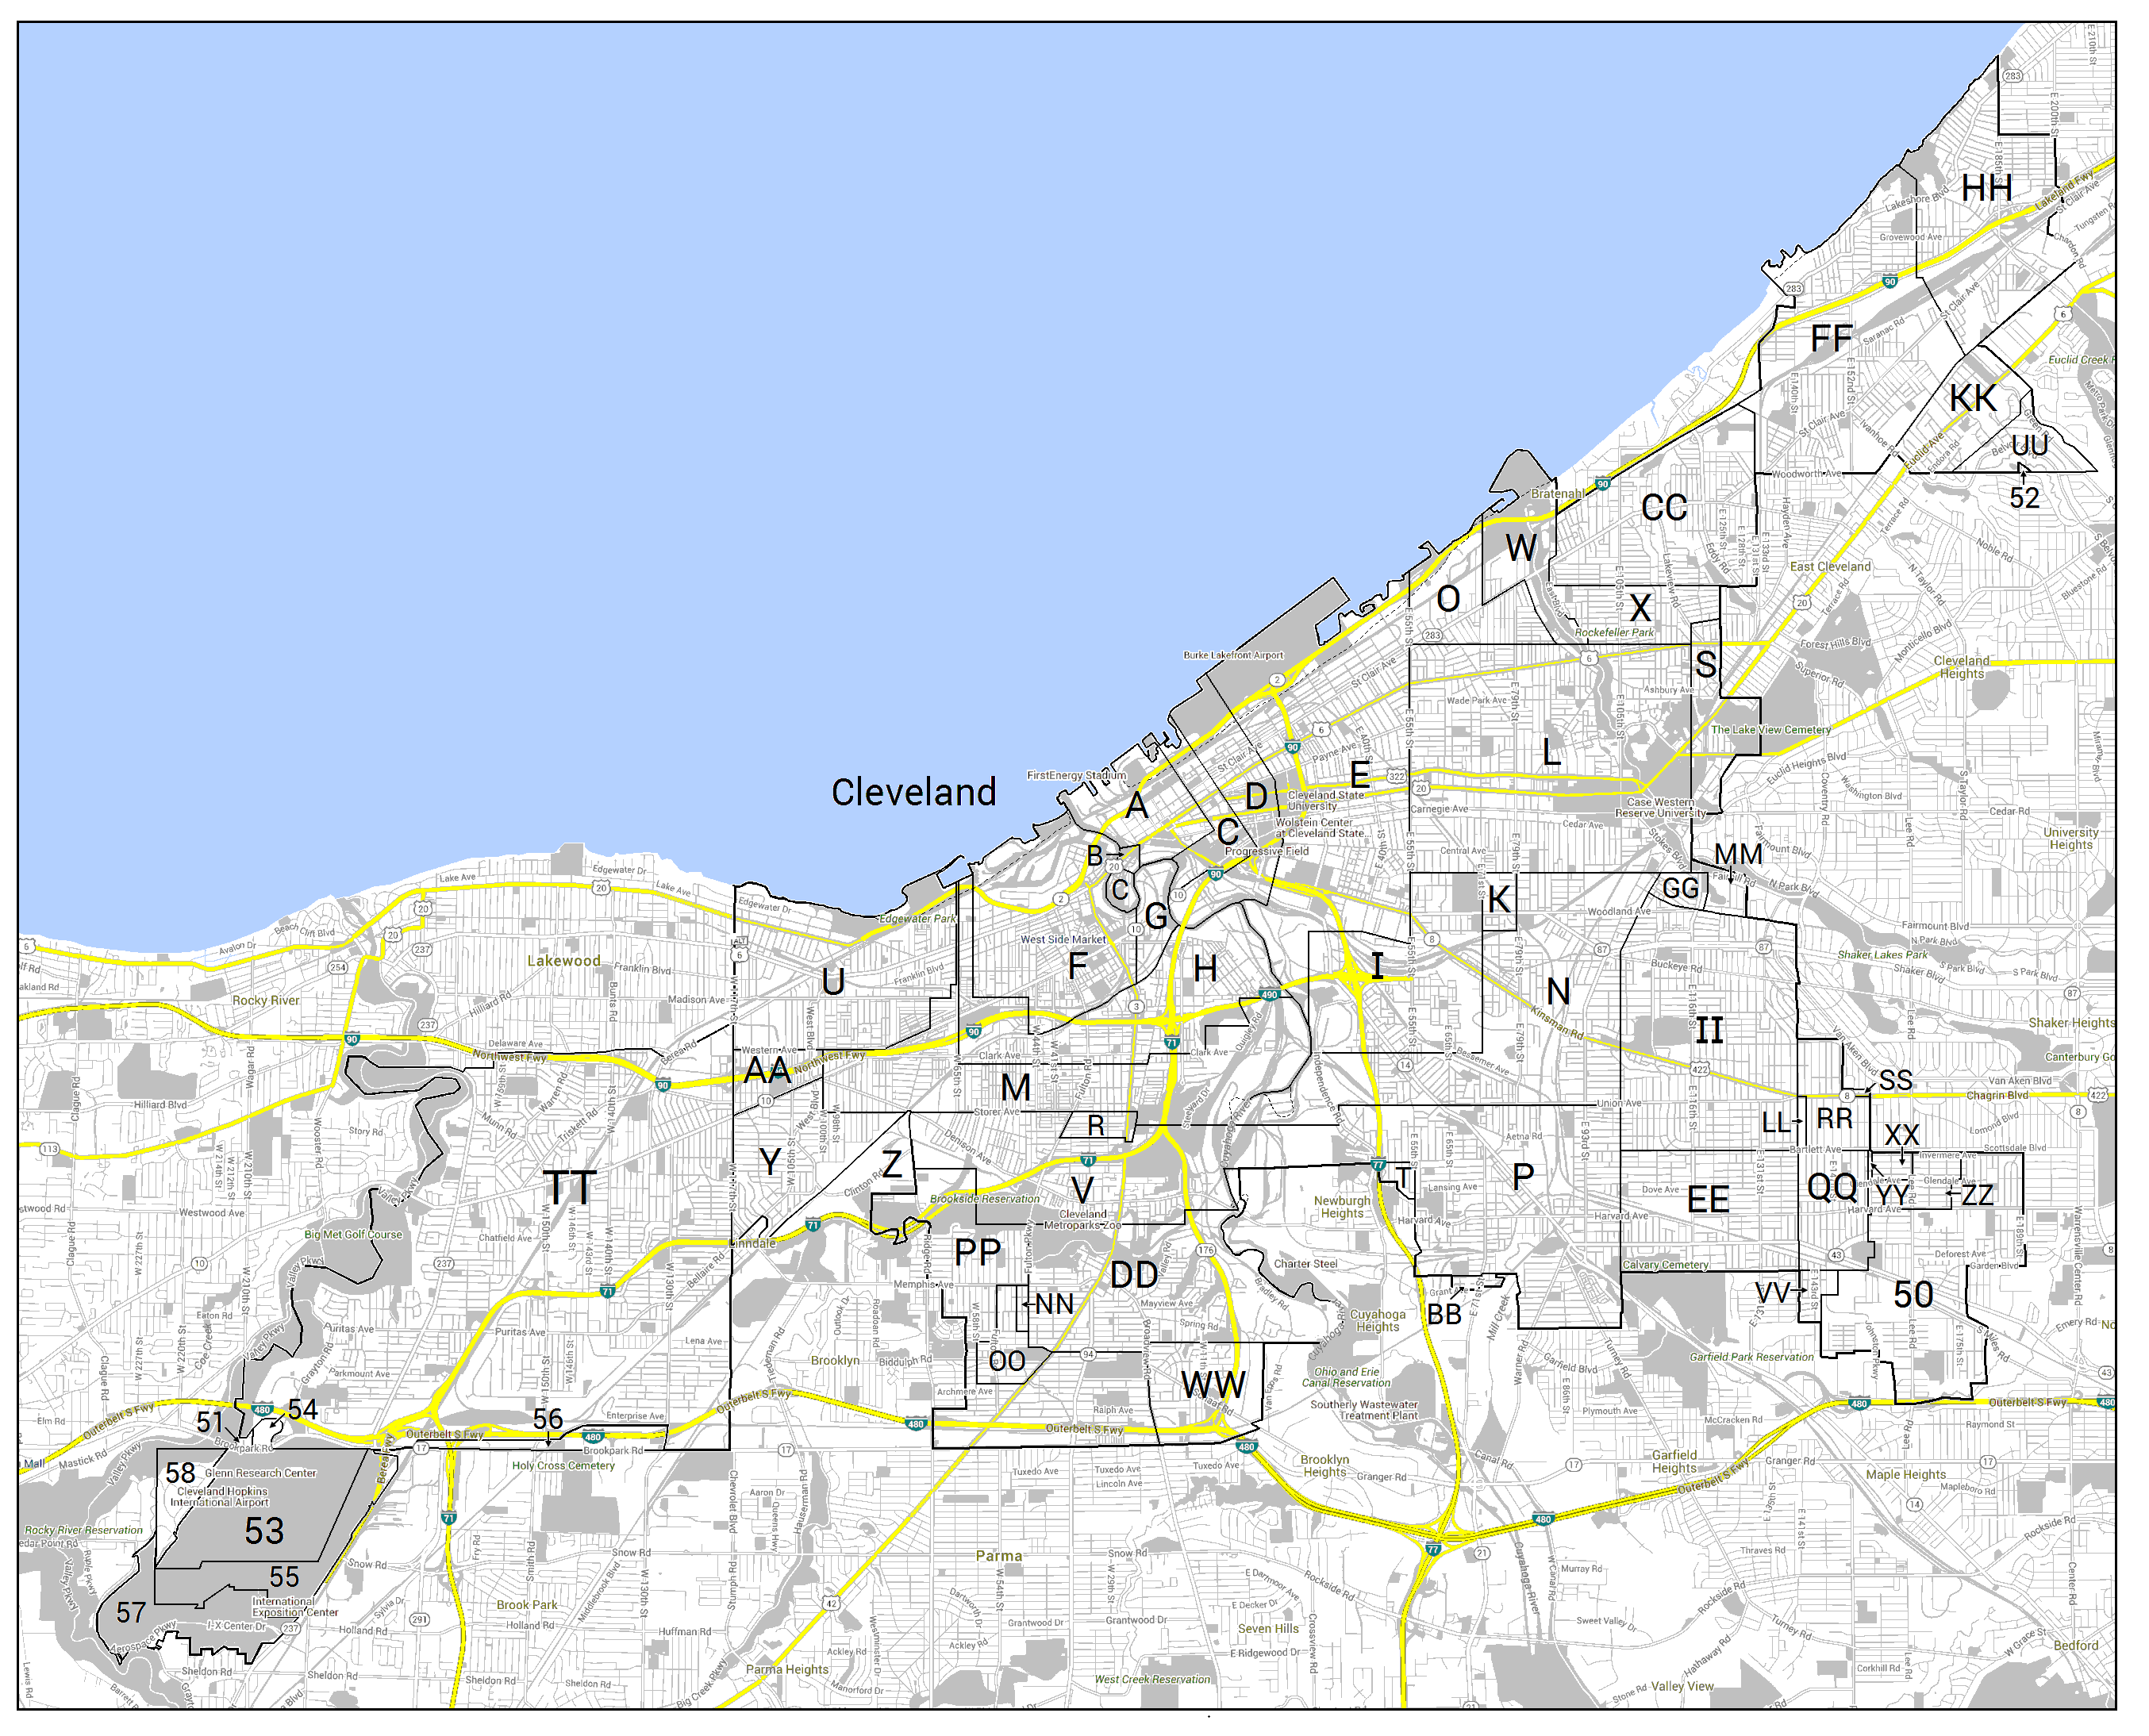 filecleveland annexation map color finalpng. filecleveland annexation map color finalpng  wikimedia commons